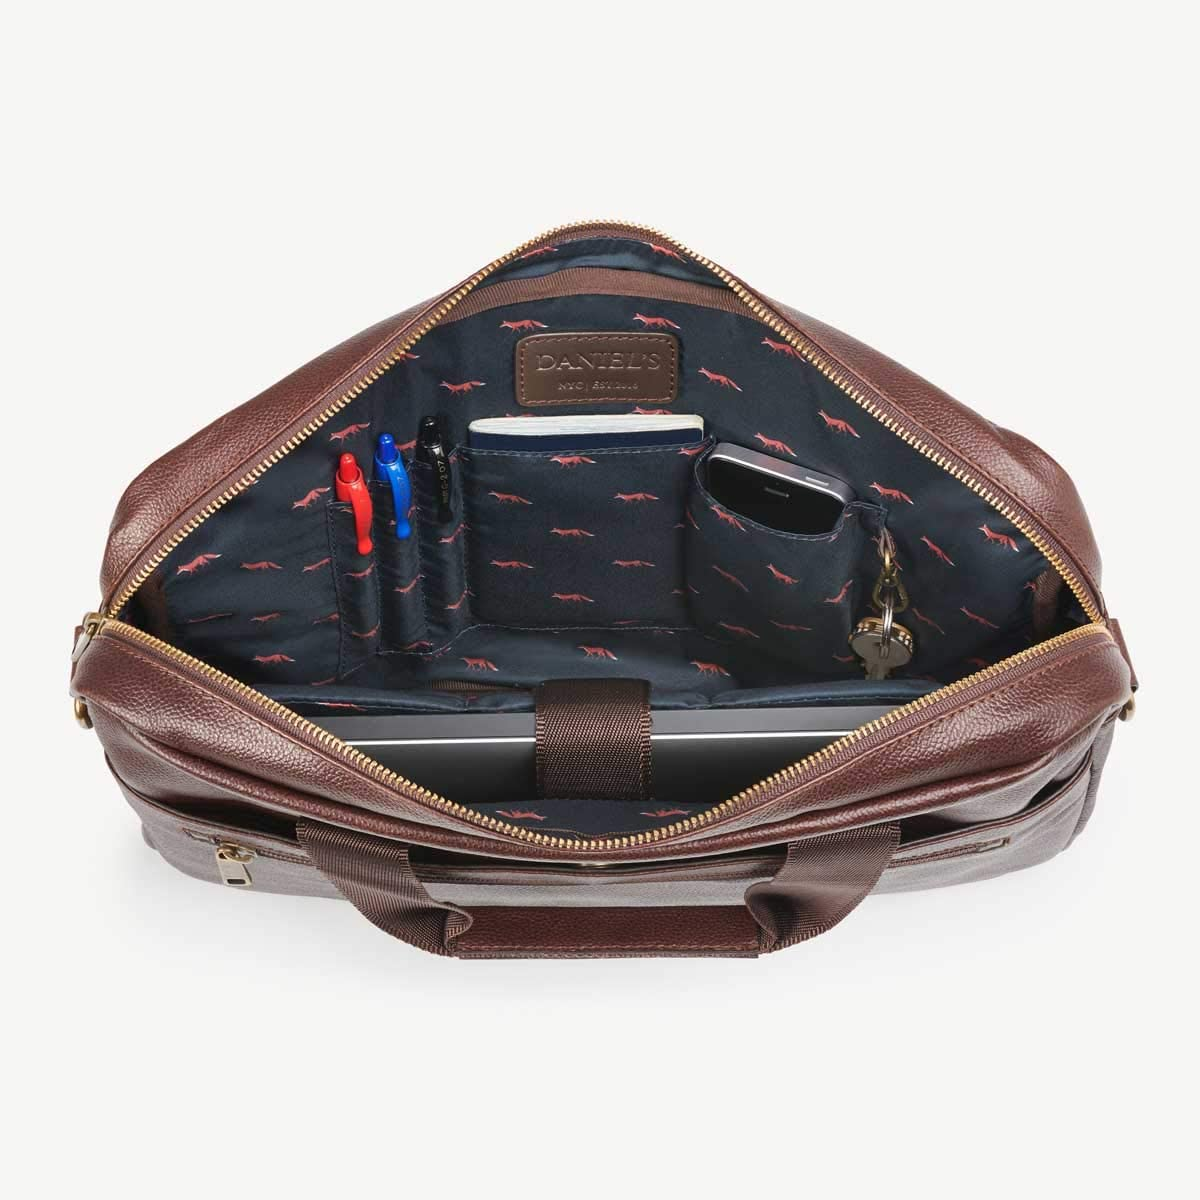 Daniel's 15.5 Inch Premium Italian Leather Briefcase Messenger Bag - Padded Laptop Compartment - Removable/Adjustable Shoulder Strap - Model No. 1 (Brown with Fox Lining) Briefcase Bag for Men